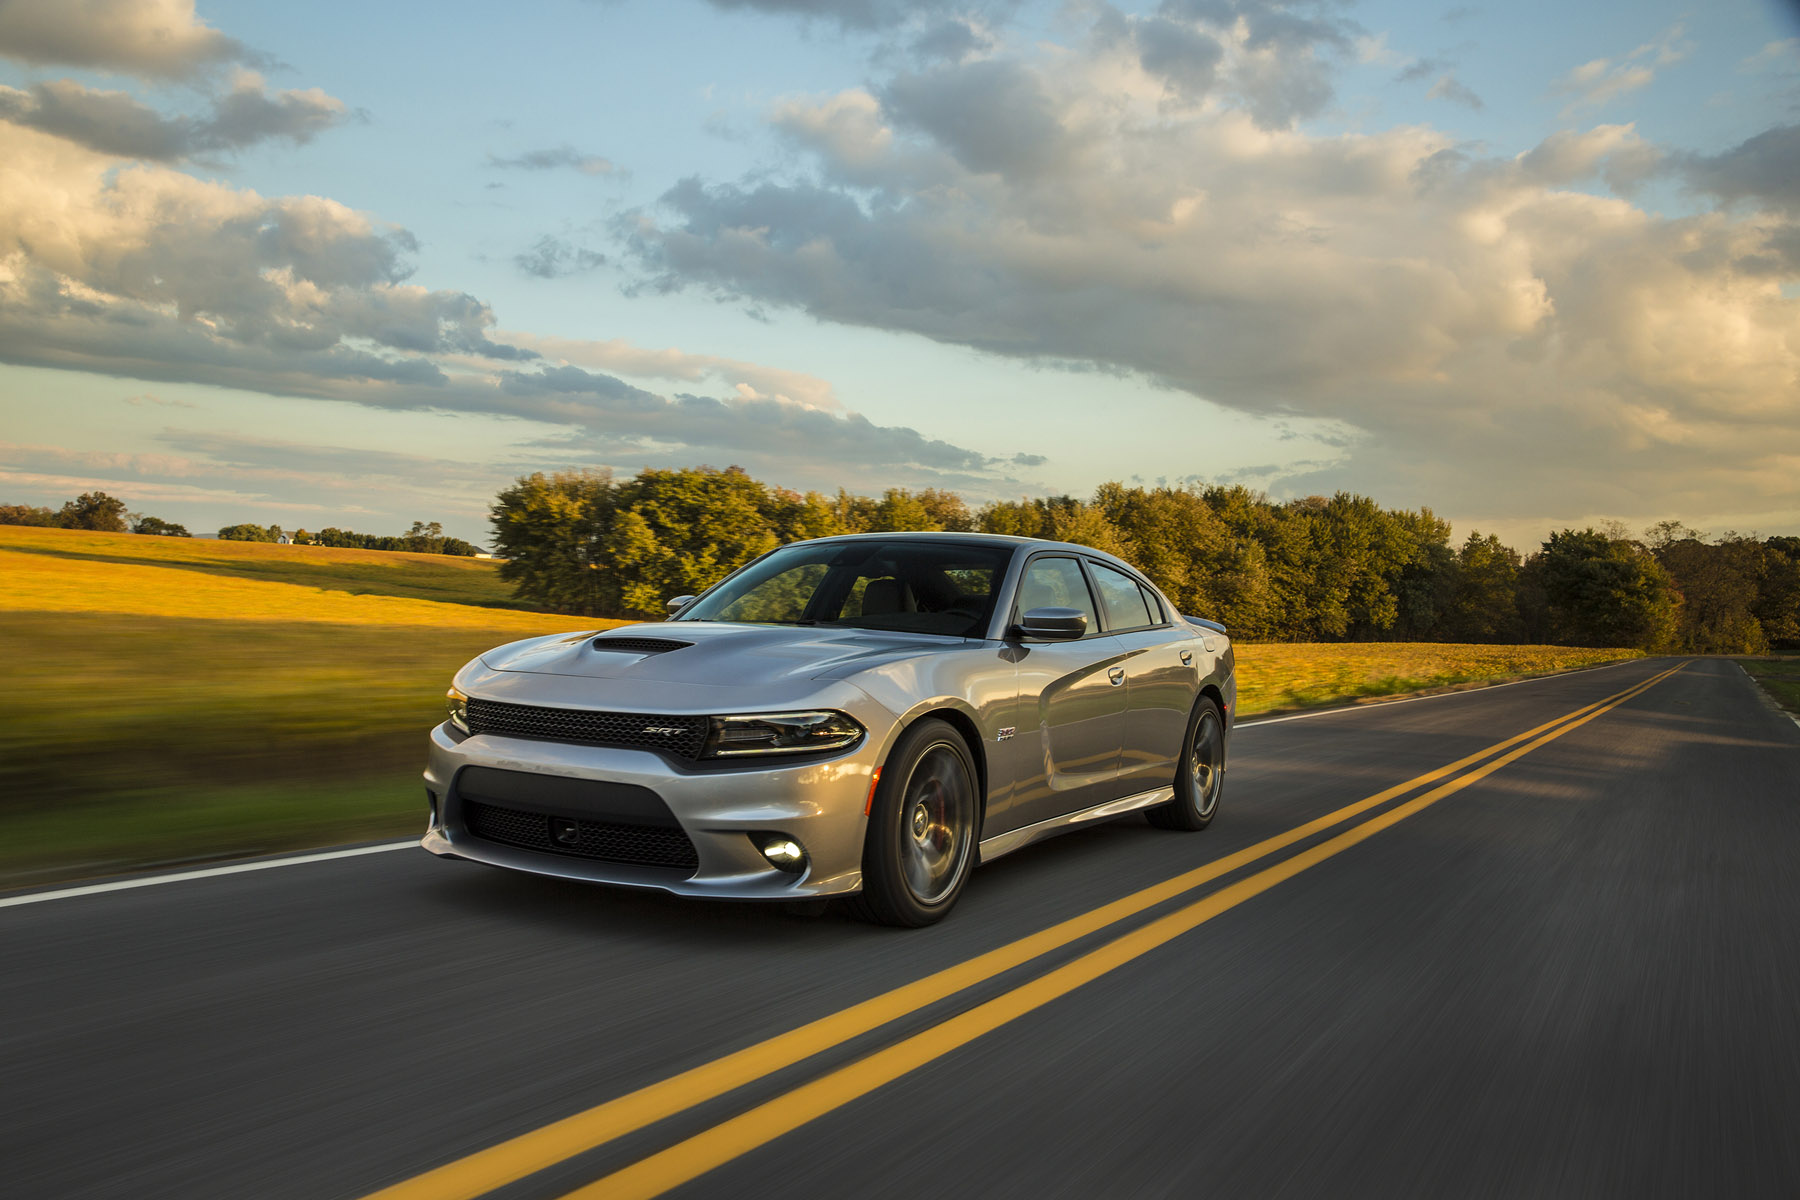 2015 Dodge Charger SRT Hellcat and SRT 392 Power 2015 Charger to New Levels of Performance ...